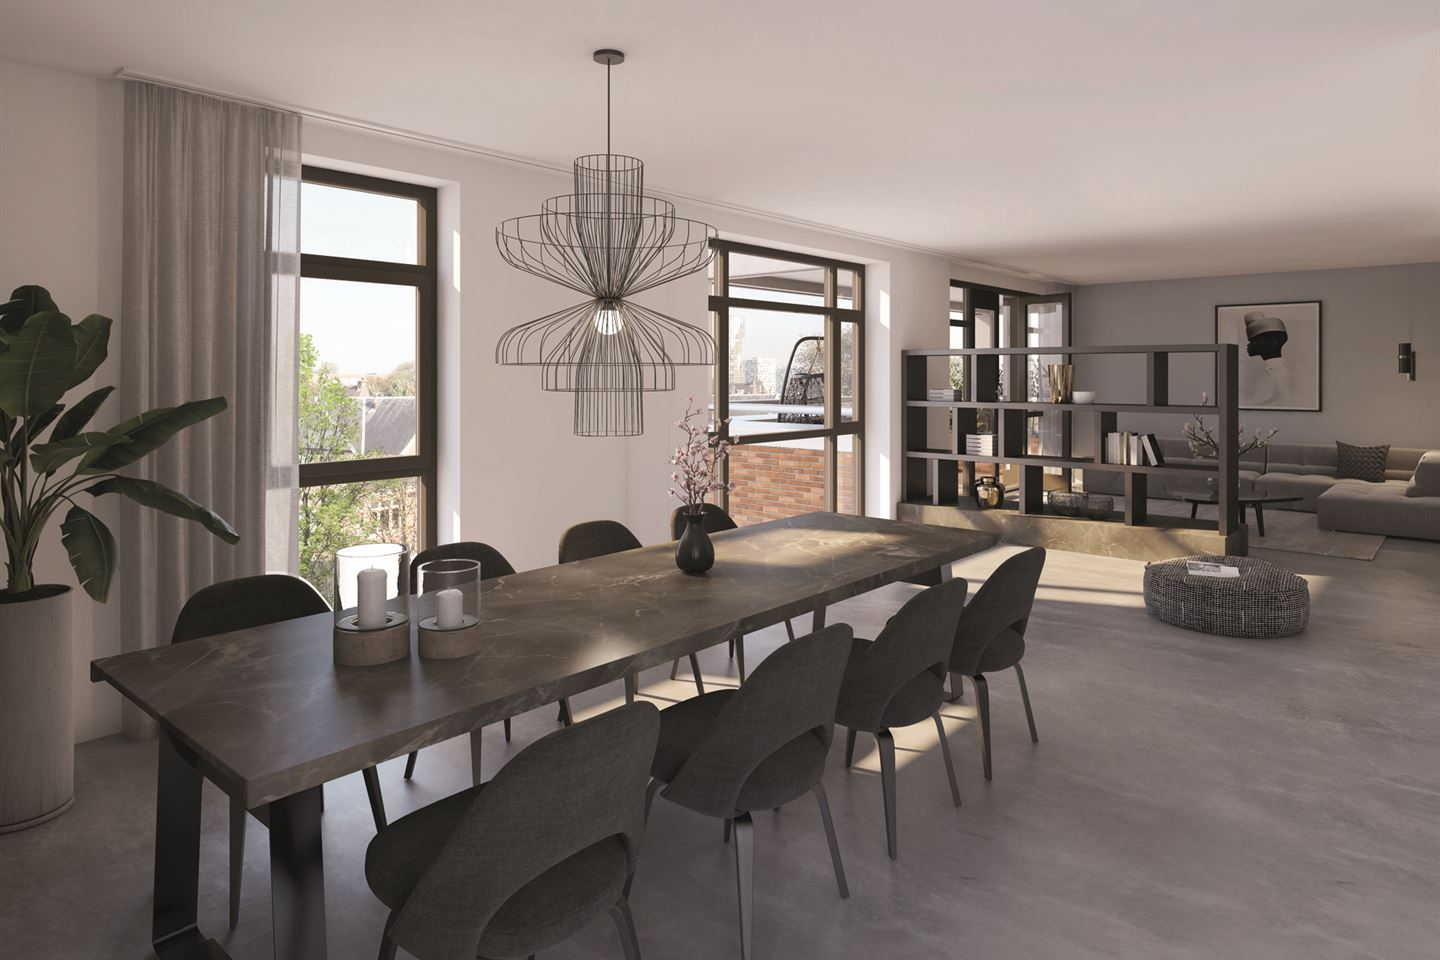 View photo 5 of Poortgebouw penthouse bnr (Bouwnr. 501)